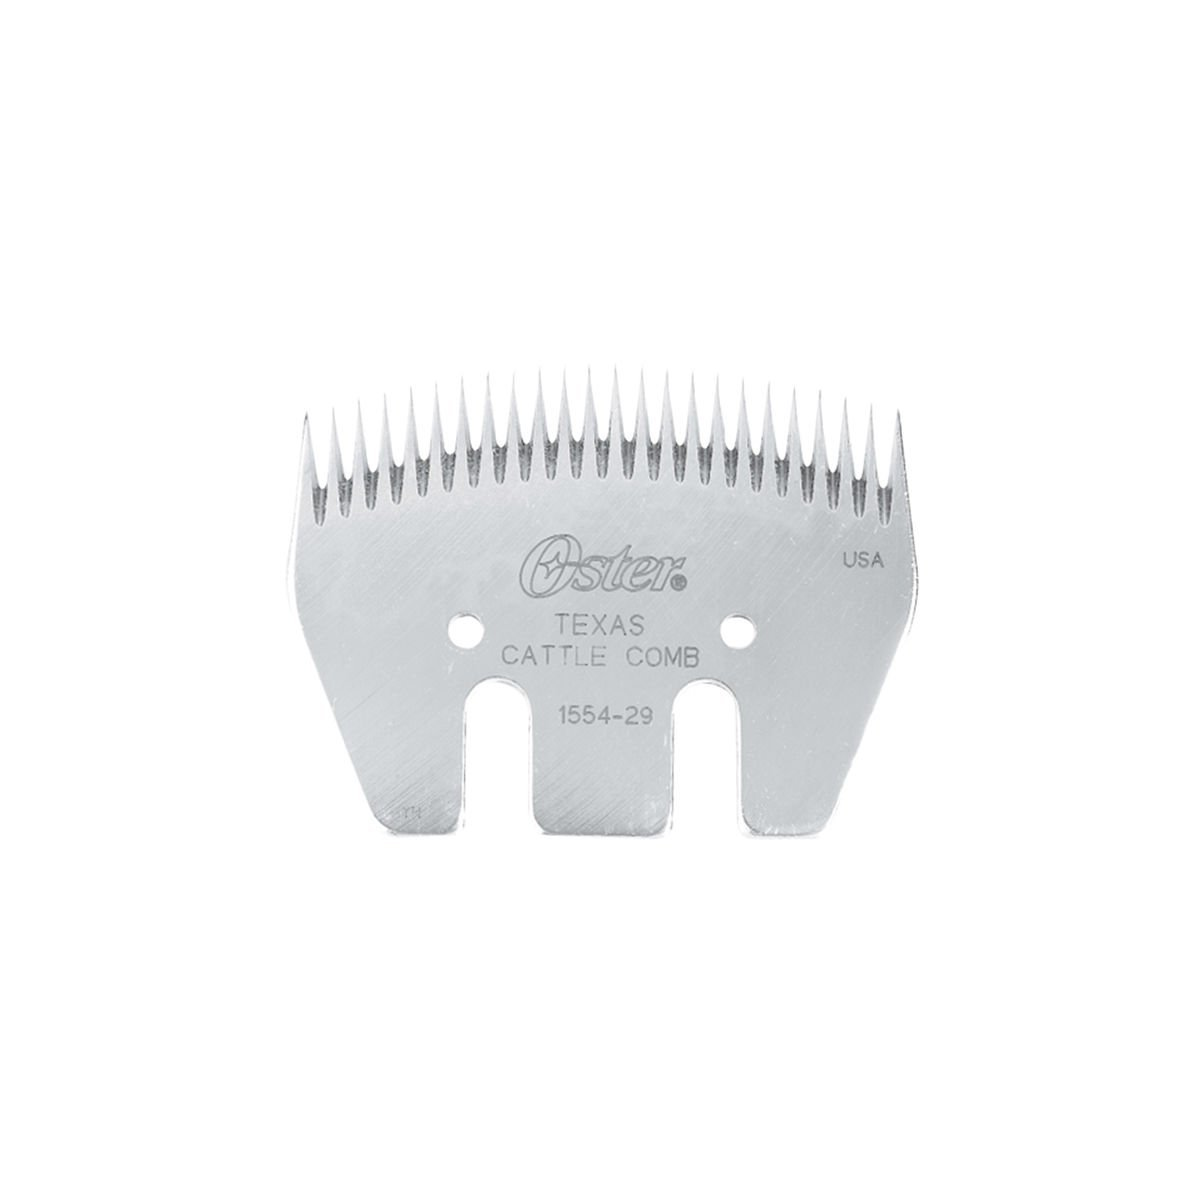 Oster Shearing Comb, 24-Tooth Texas Cattle Show Comb